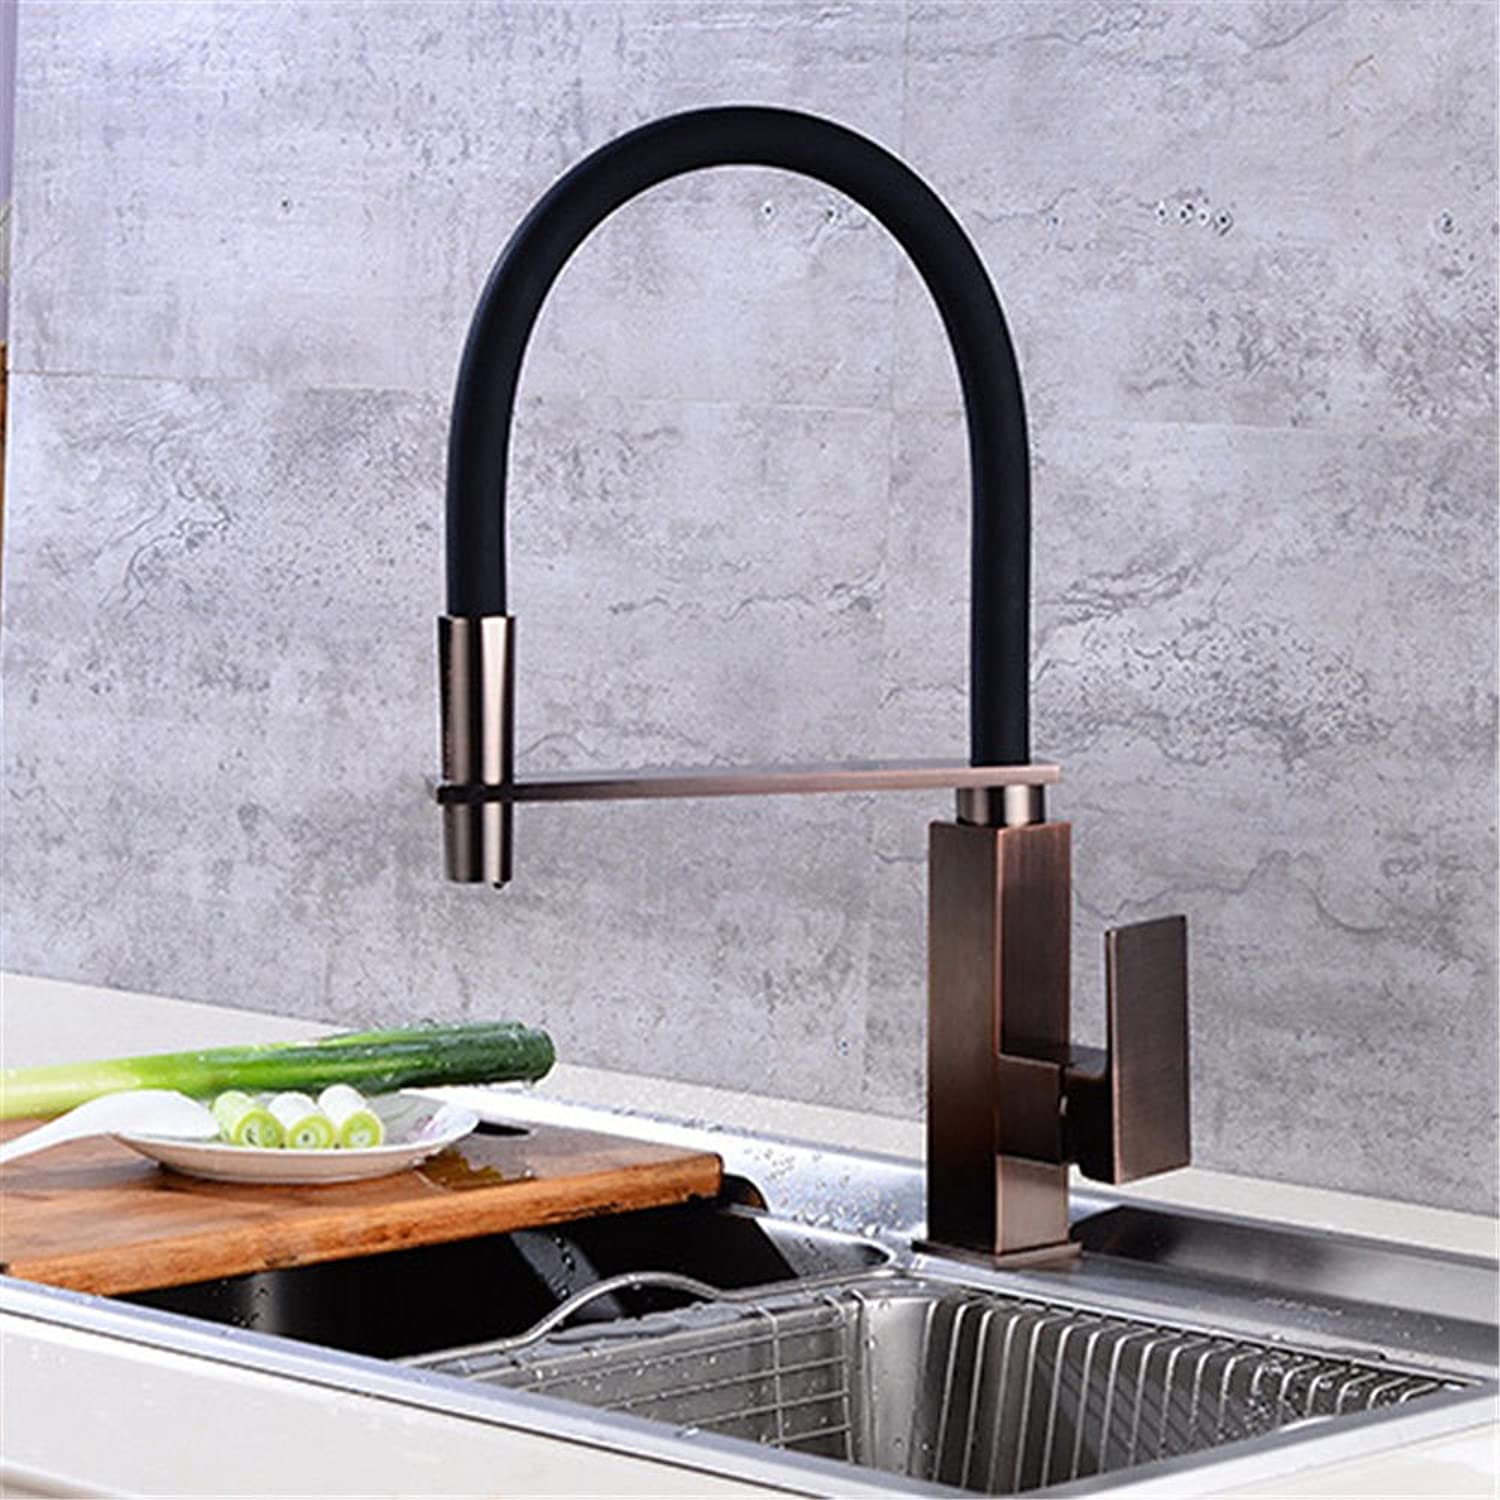 Gyps Faucet Single-Lever Washbasin Mixer Tap Spring Kitchen Tap Hot and Cold Water Tap D-redation Mixer Tap